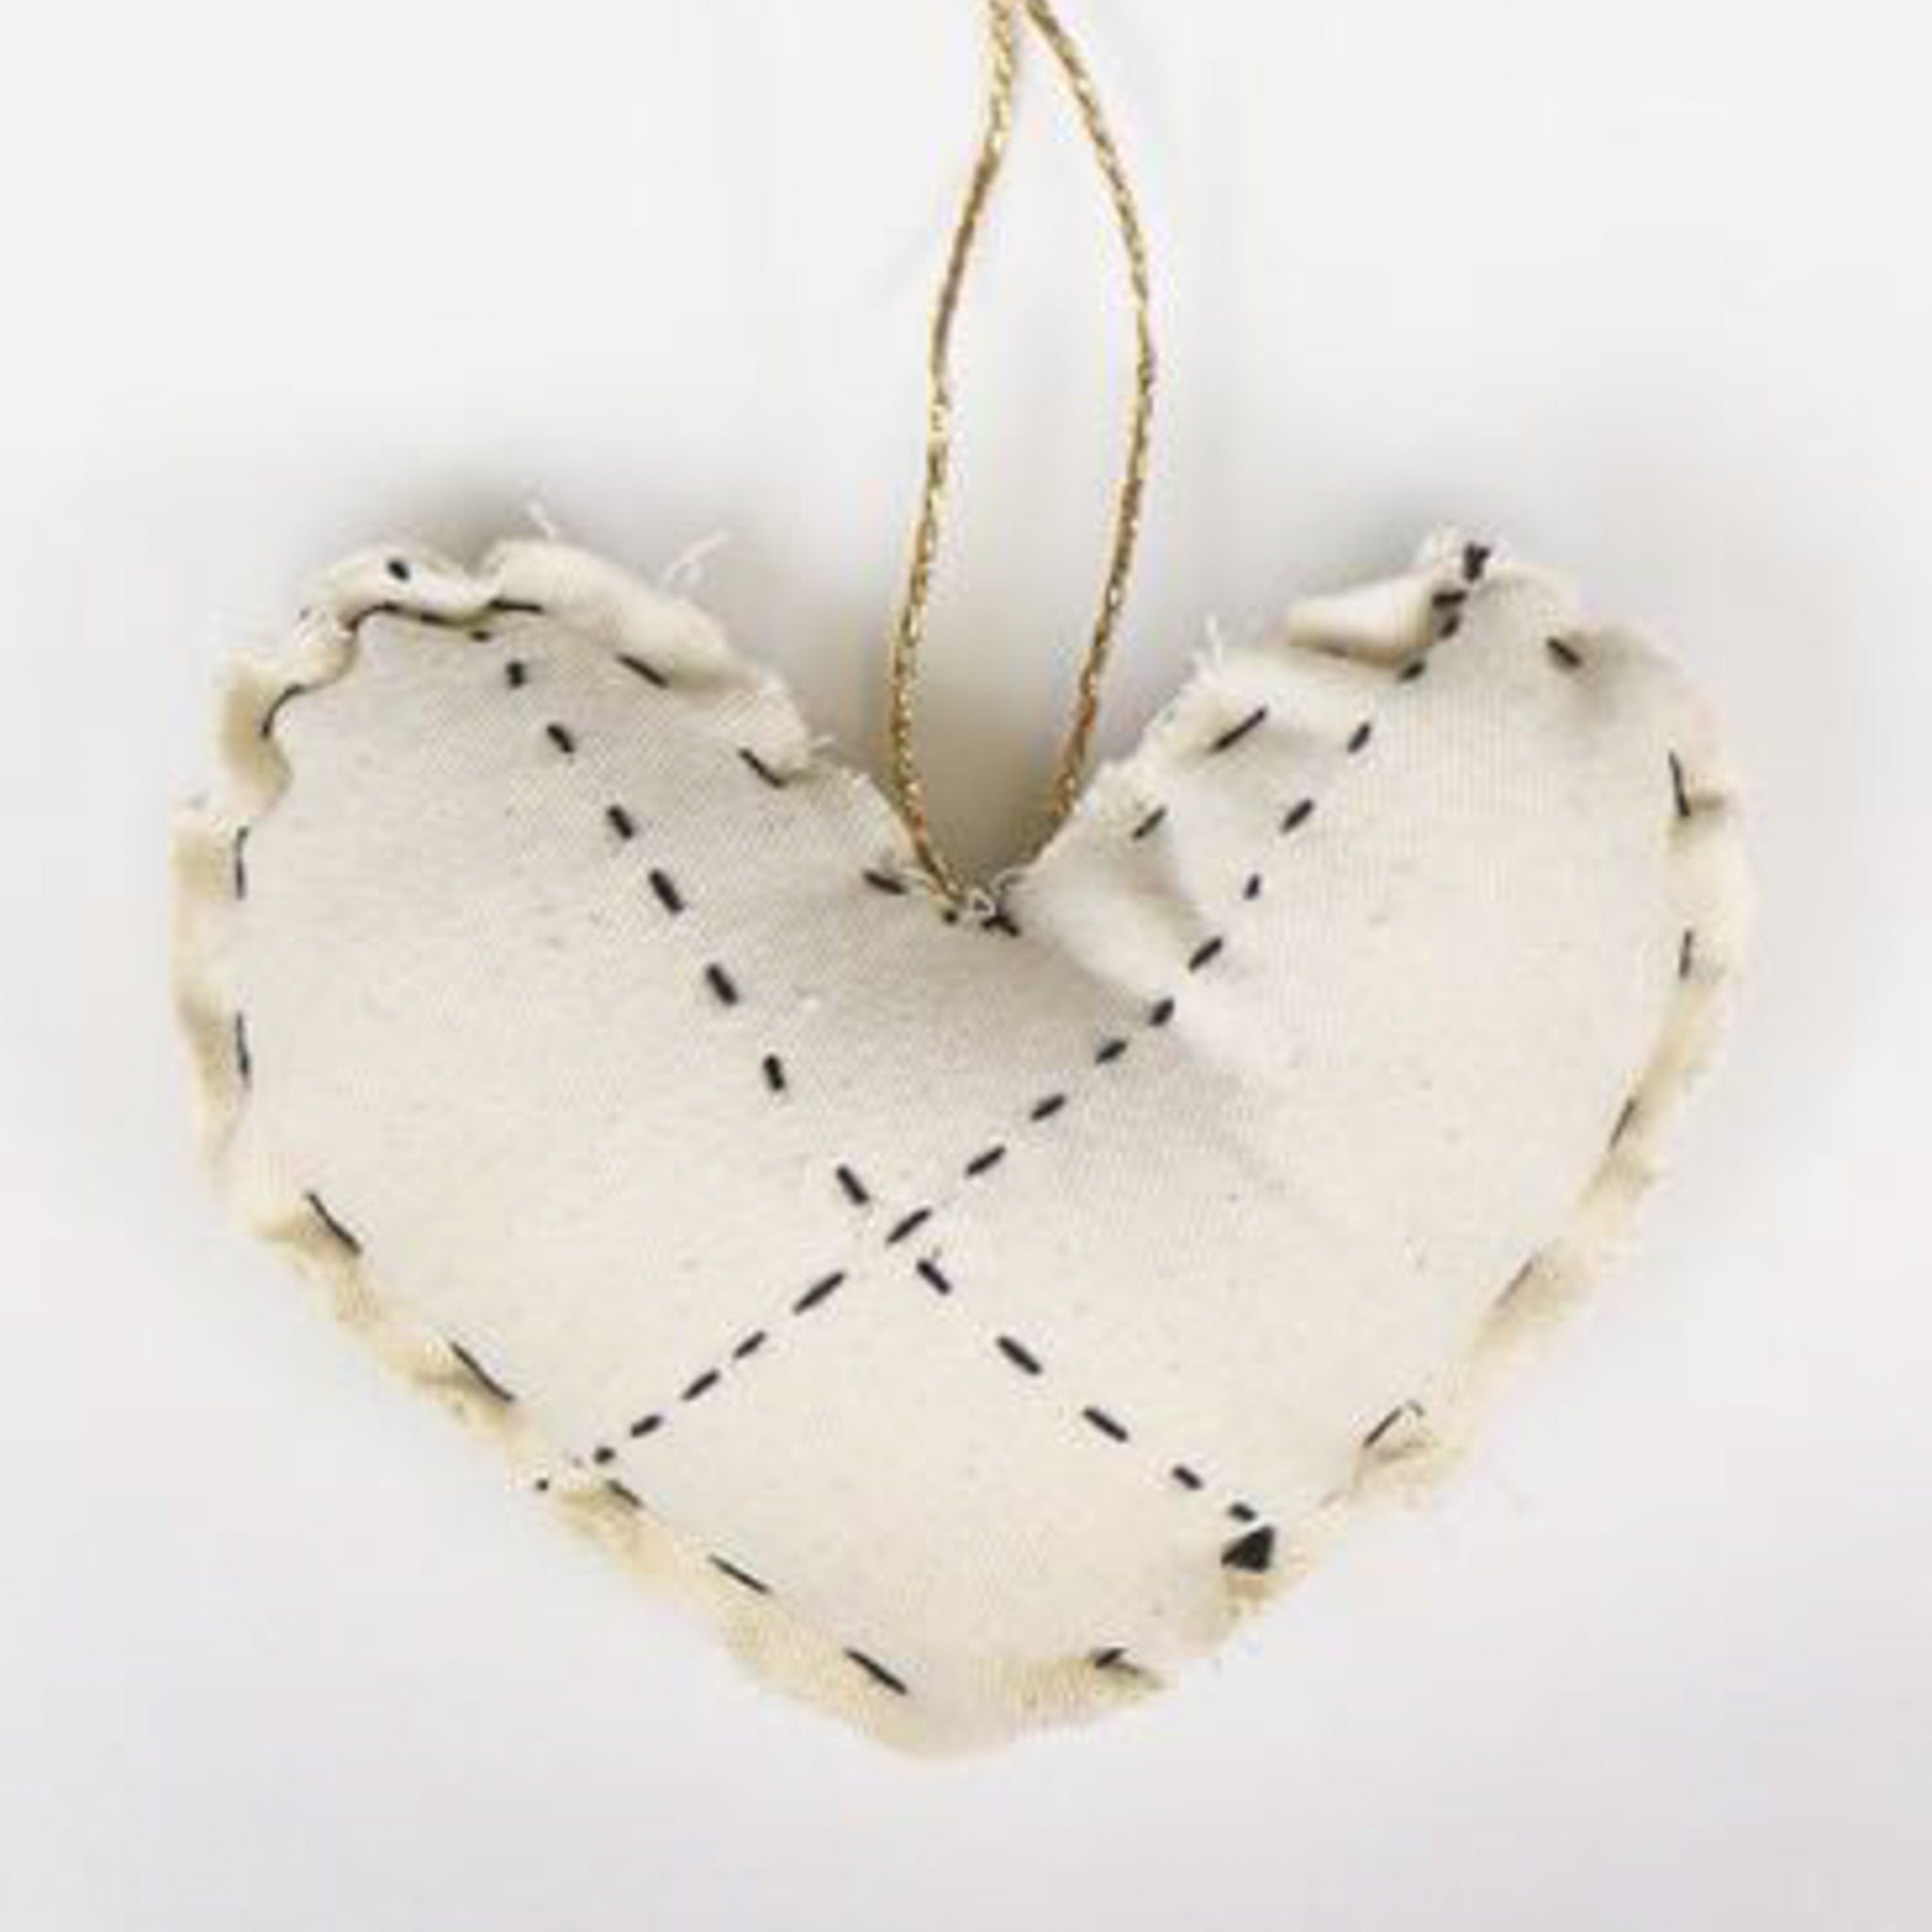 Hand-Stitched Heart Ornament